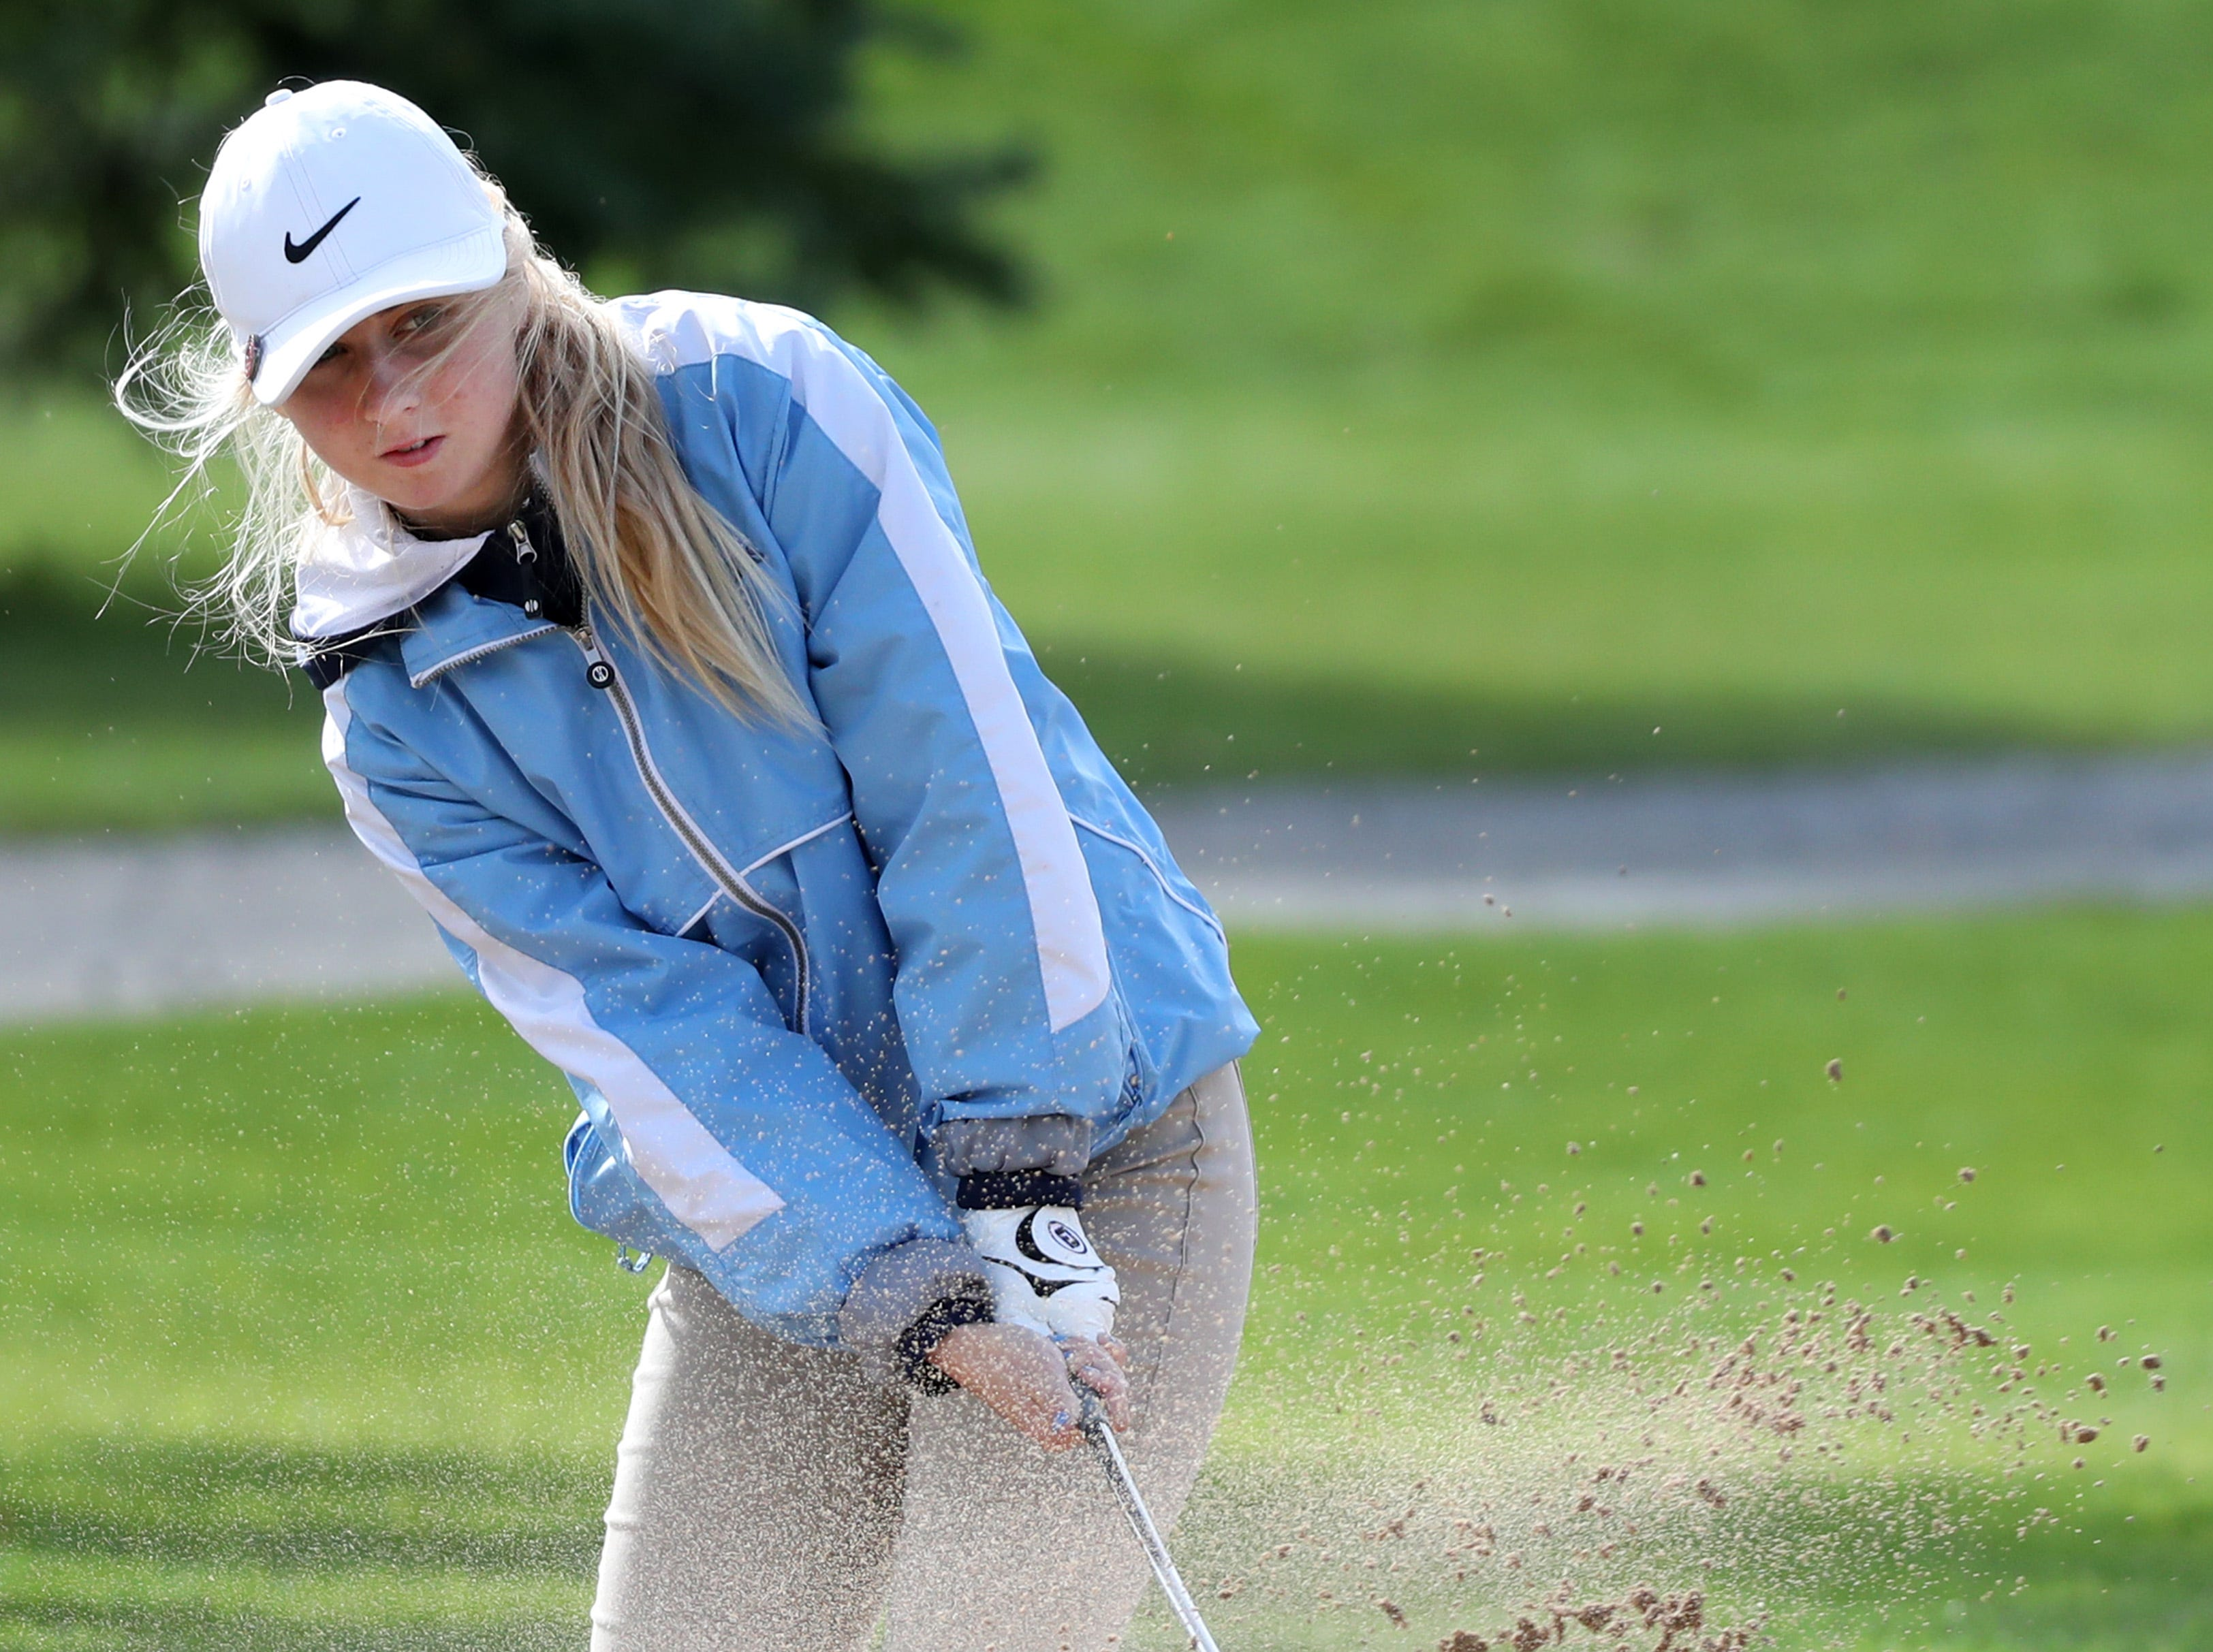 Little Chute's Sophie Brown hits out of a sandtrap during the WIAA Division 2 Regional Girls Golf Tournament Wednesday, Sept. 26, 2018, at Mid Vallee Golf Course in De Pere, Wis.Danny Damiani/USA TODAY NETWORK-Wisconsin